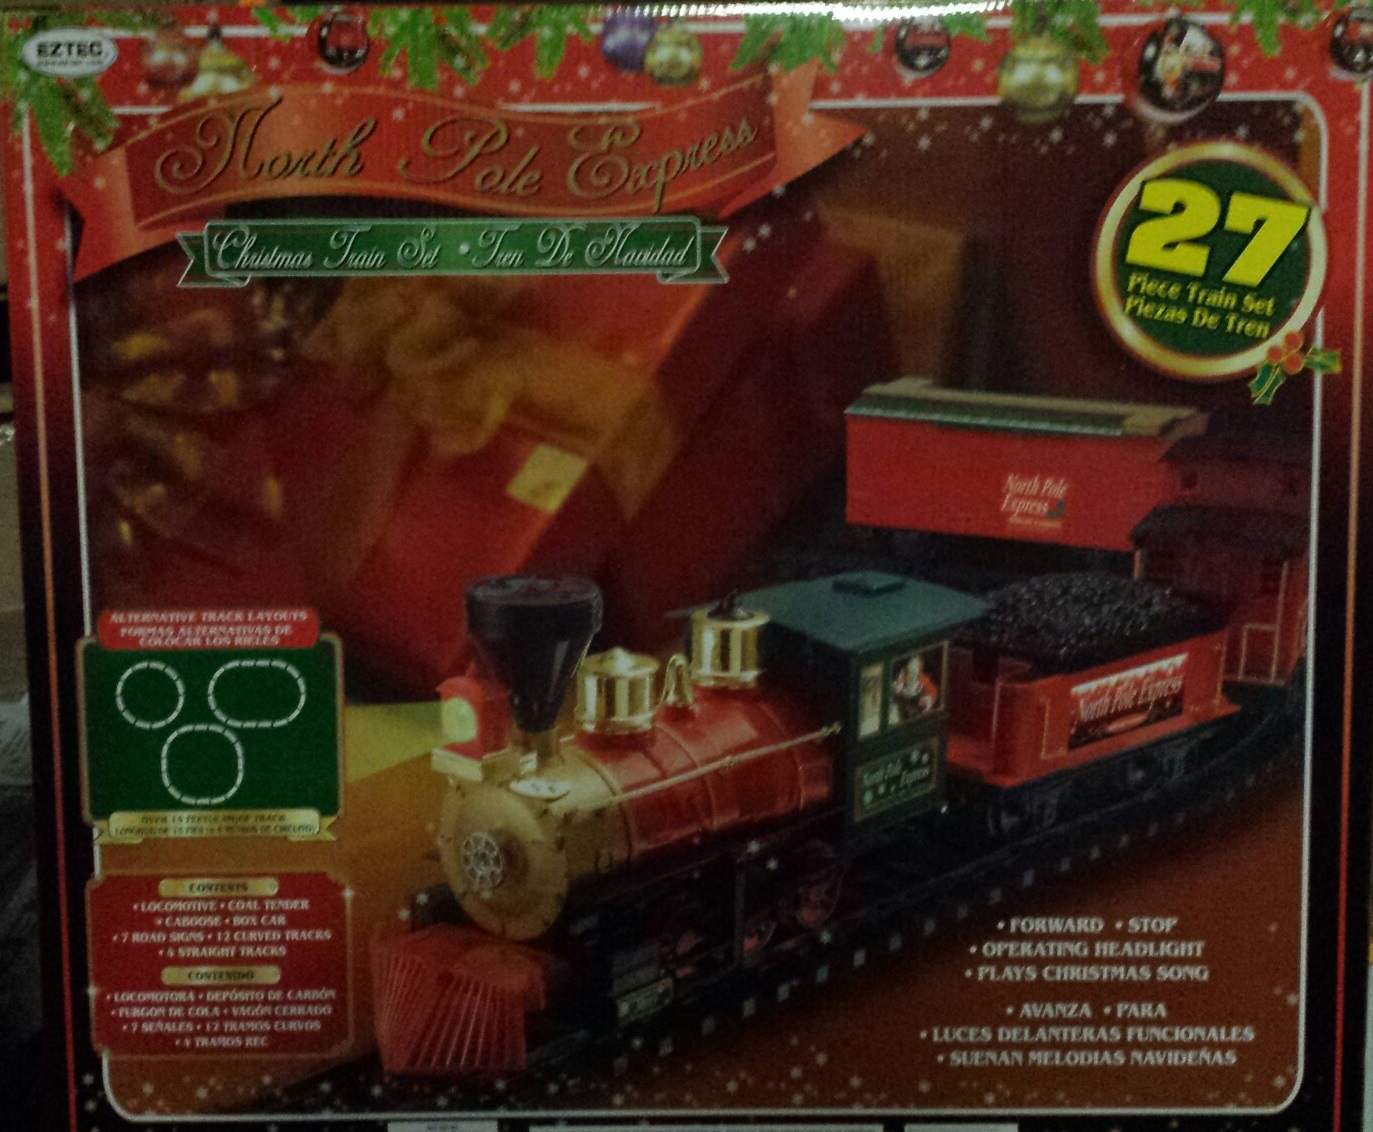 North Pole Express Christmas 27-Piece Train Set - Walmart.com